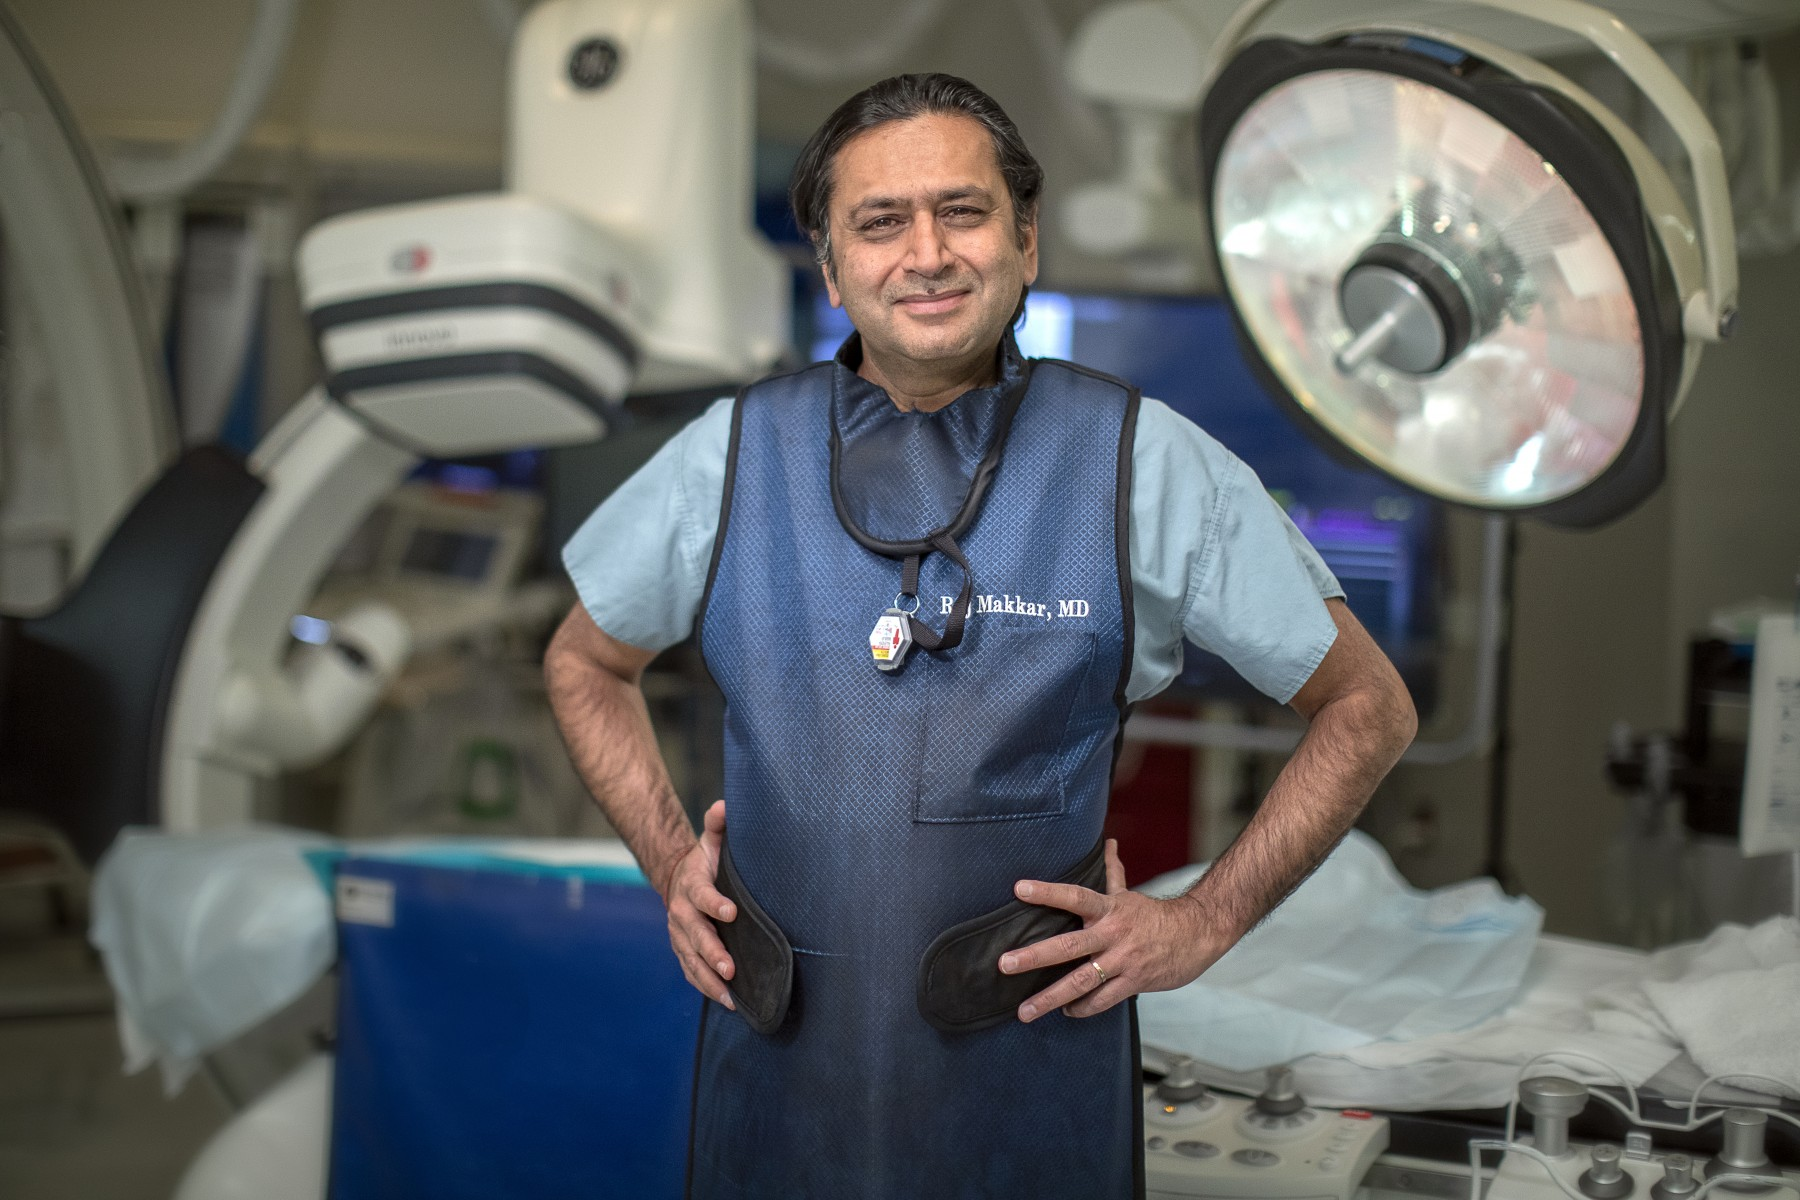 Heart Valve Procedure Safe for Patients With Common Heart Defect